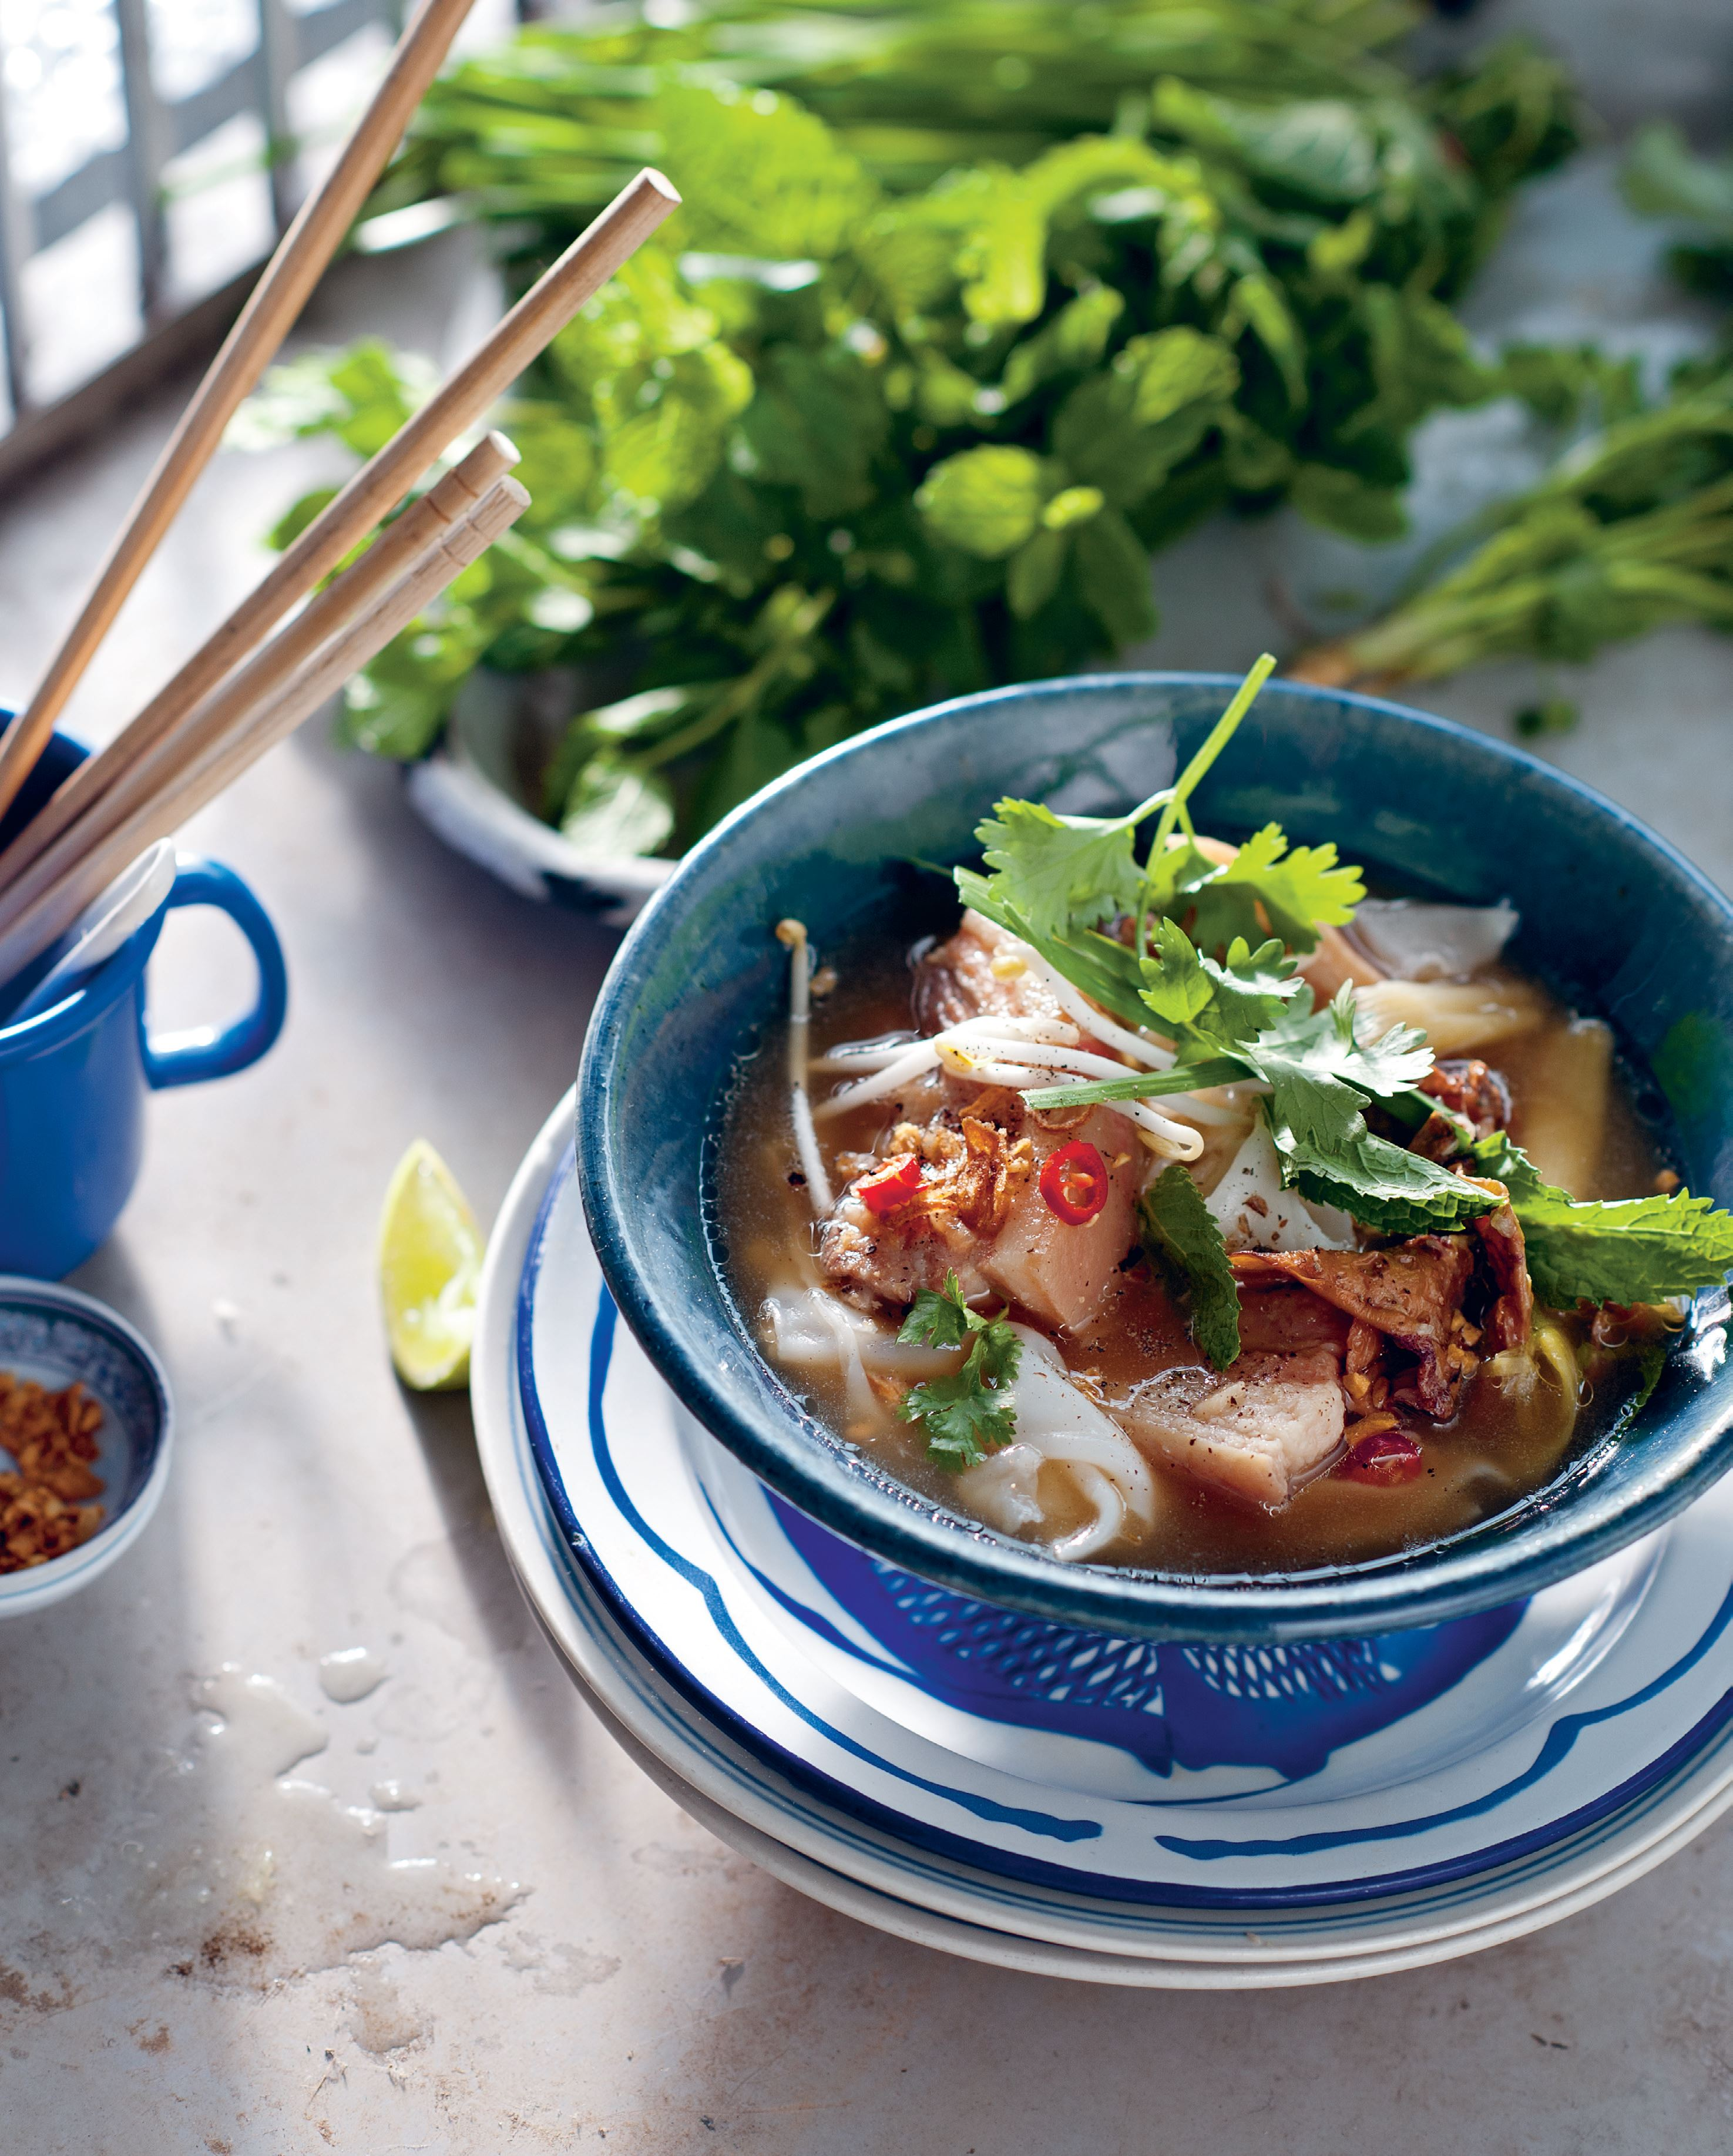 Pork rib broth with soft rice noodles